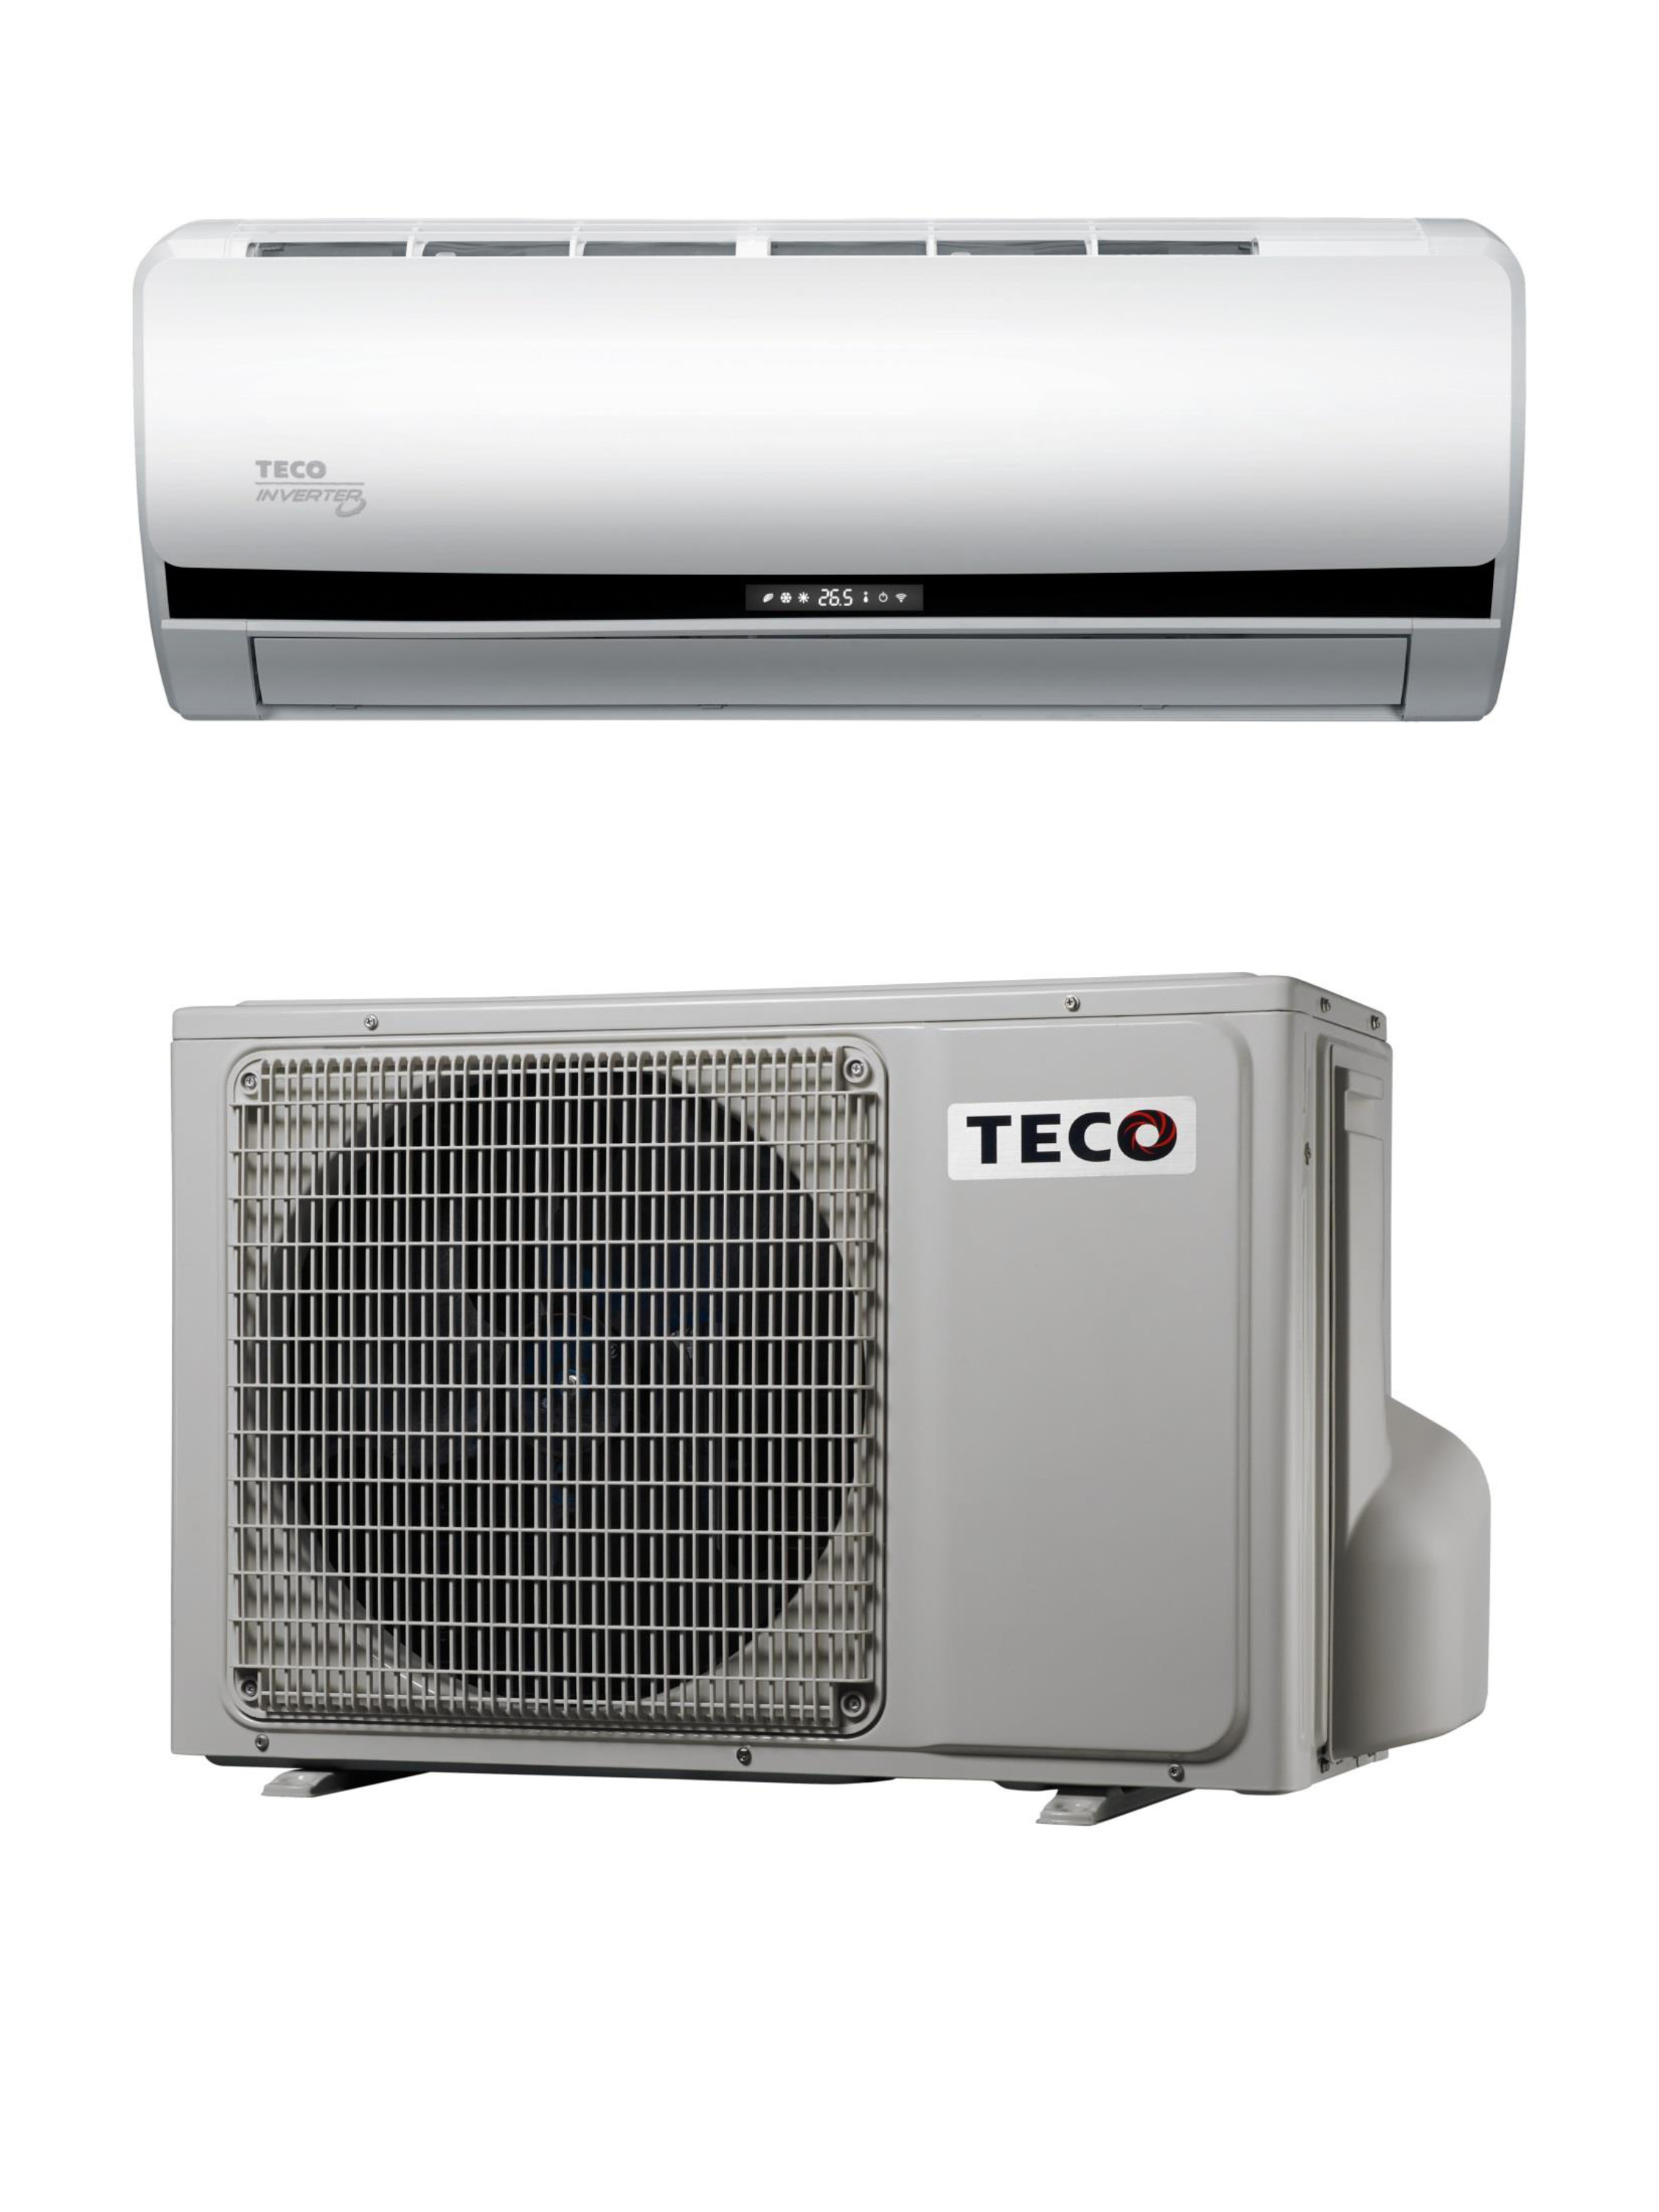 Cloud networking smart and Emissions Reduction inverter air-conditioner